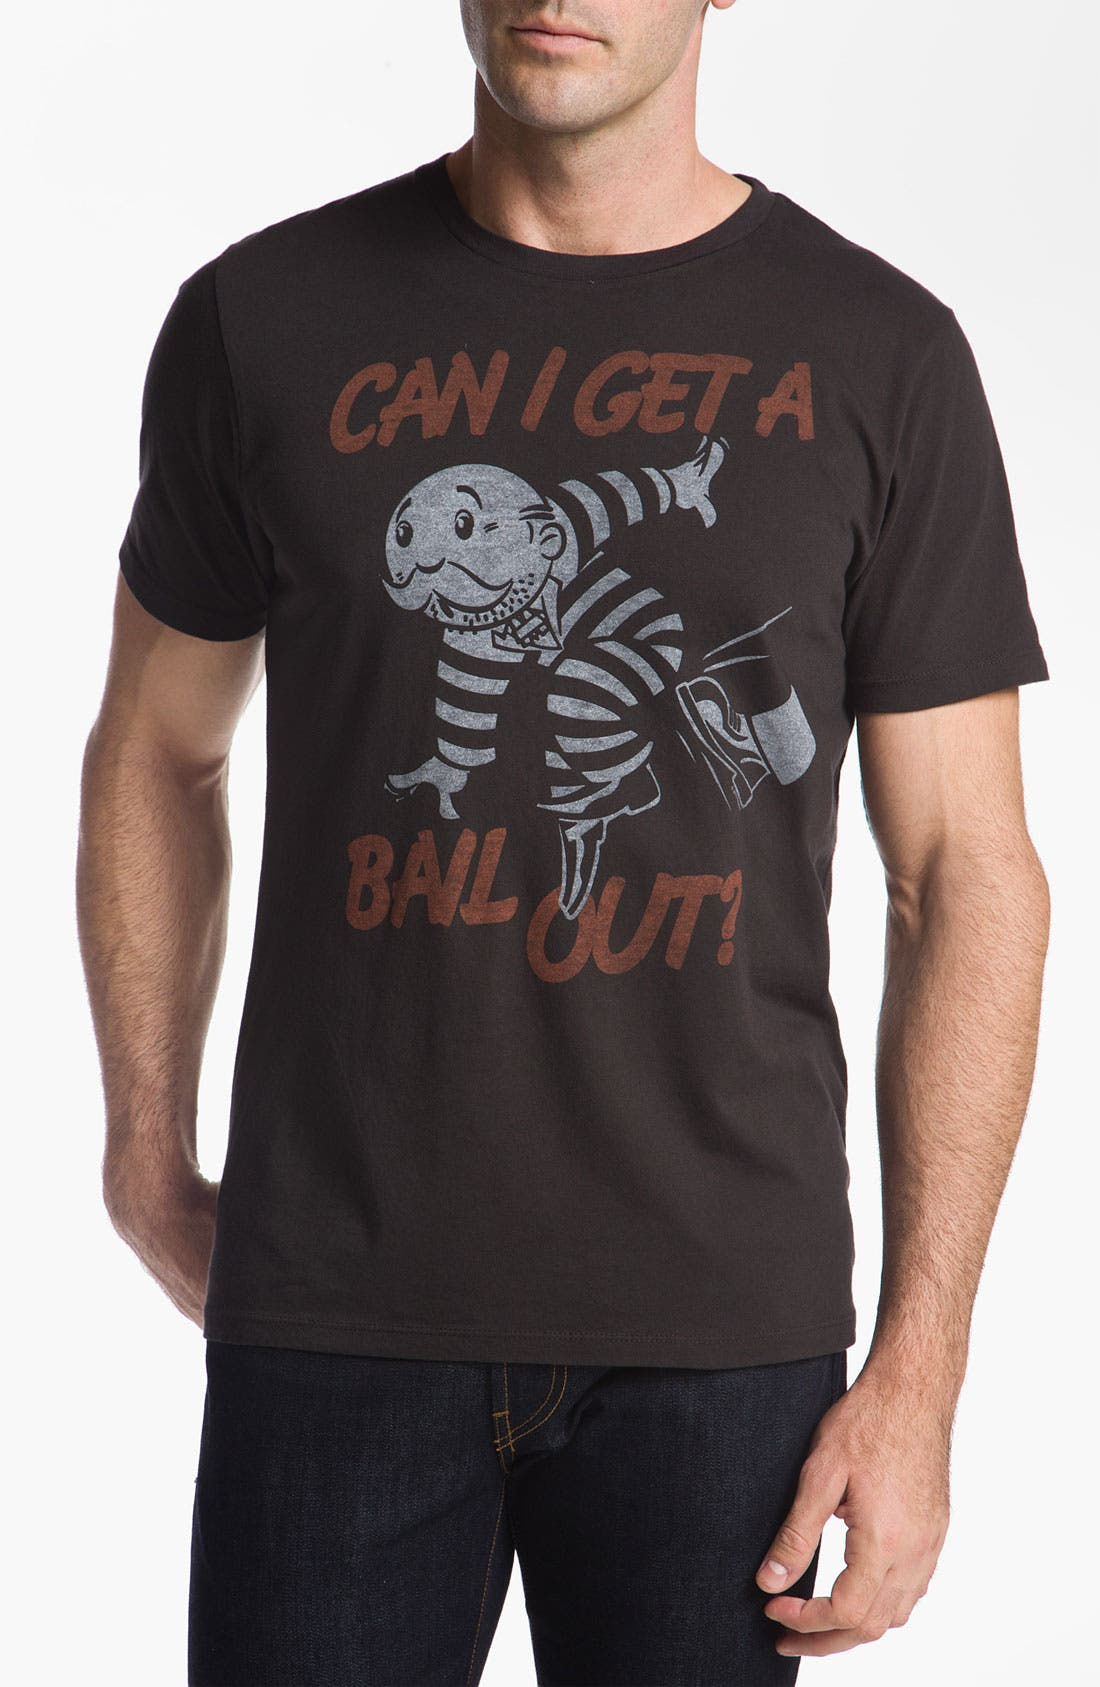 "Alternate Image 1 Selected - Junk Food 'Can I Get a Bail Out"" Graphic T-Shirt"